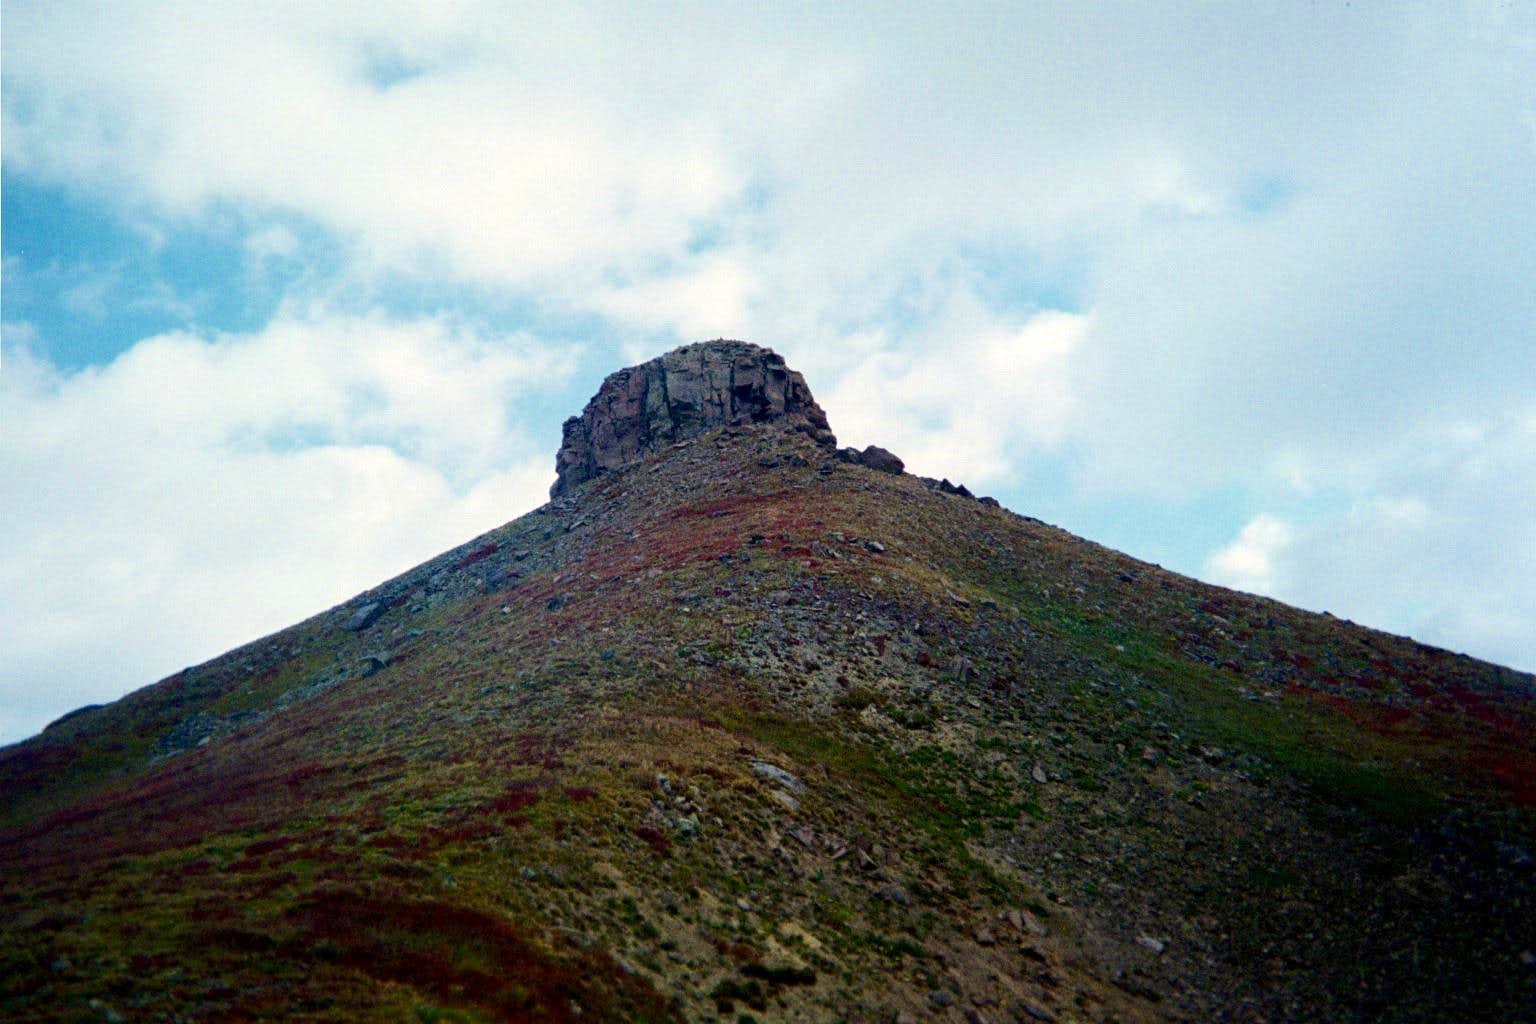 South River Peak